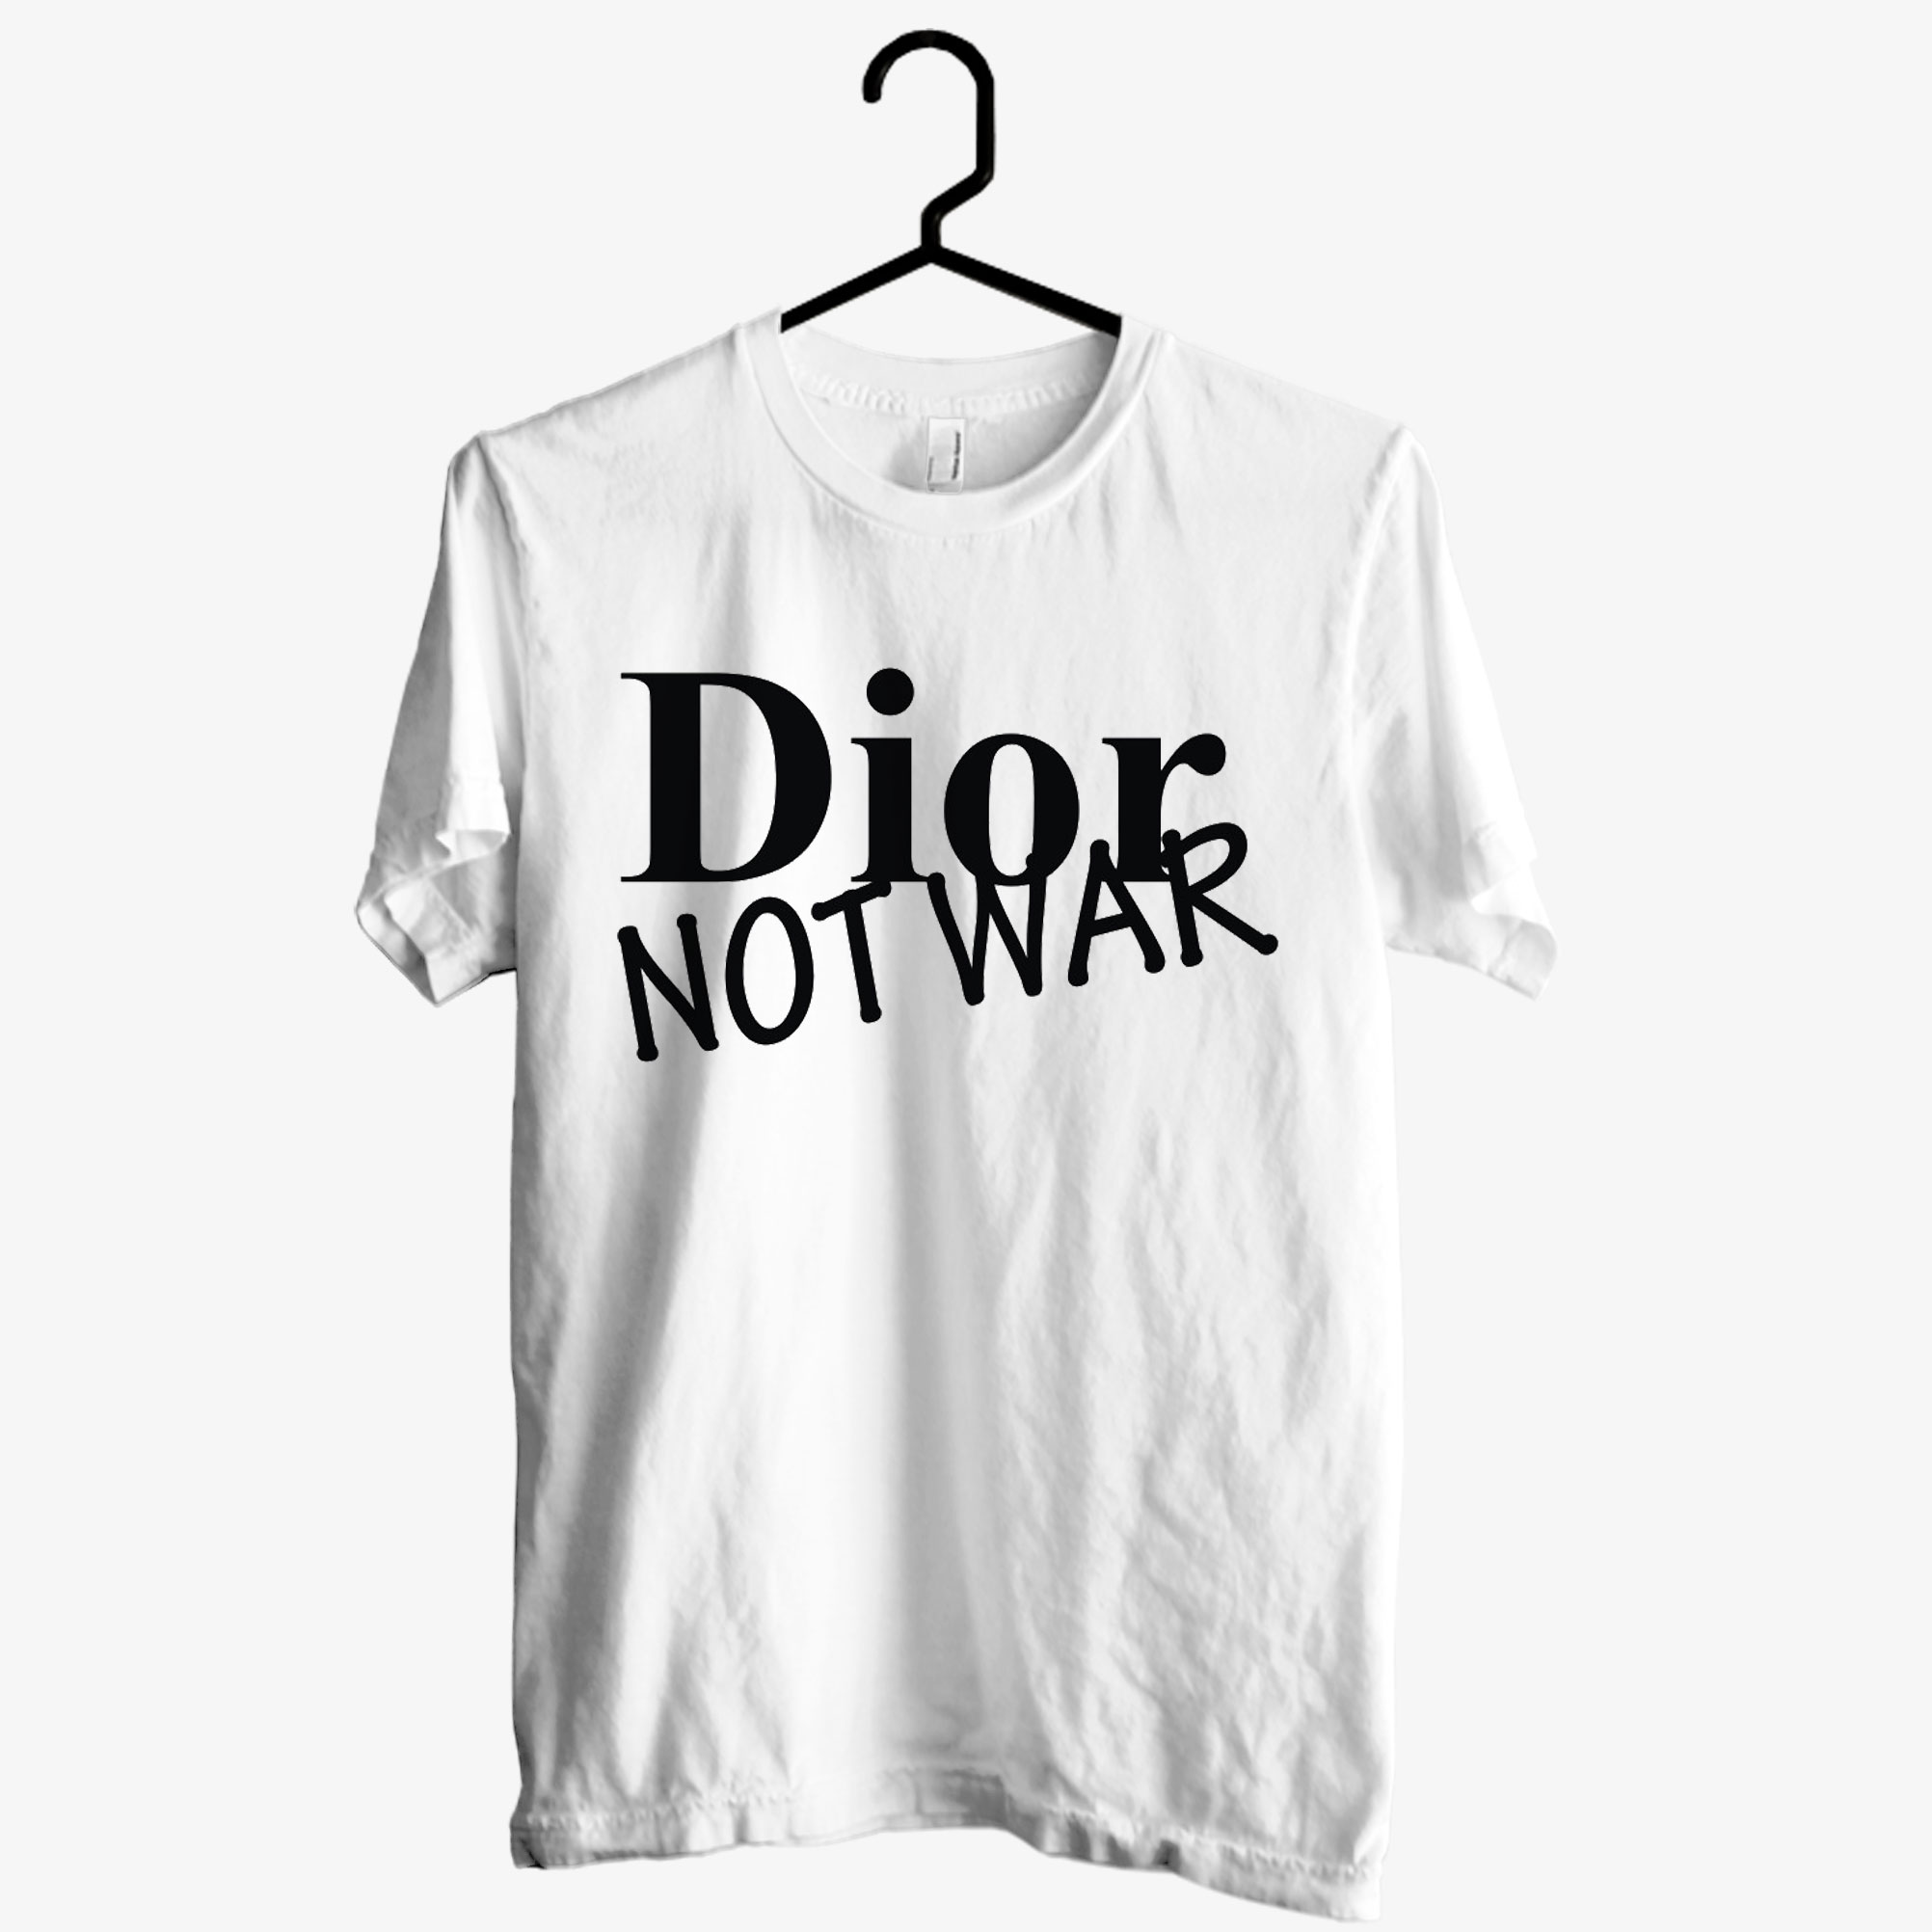 Dior Not War T shirt